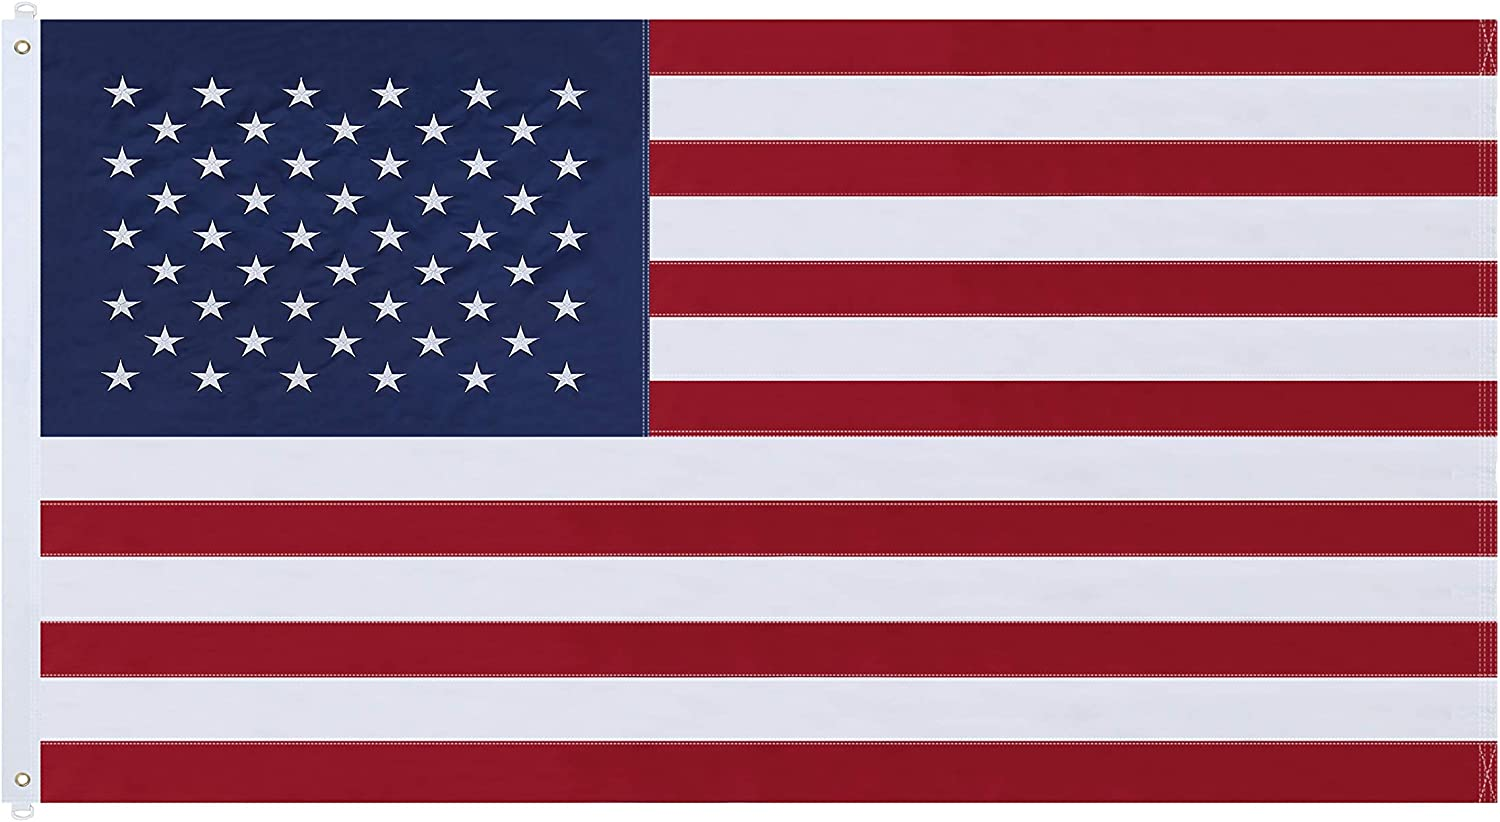 NuLink American Flag 5x8 Ft USA US Embroidered Stars Sewn Stripes Brass Grommets Flag 210D Oxford Nylon for Indoor Outdoor